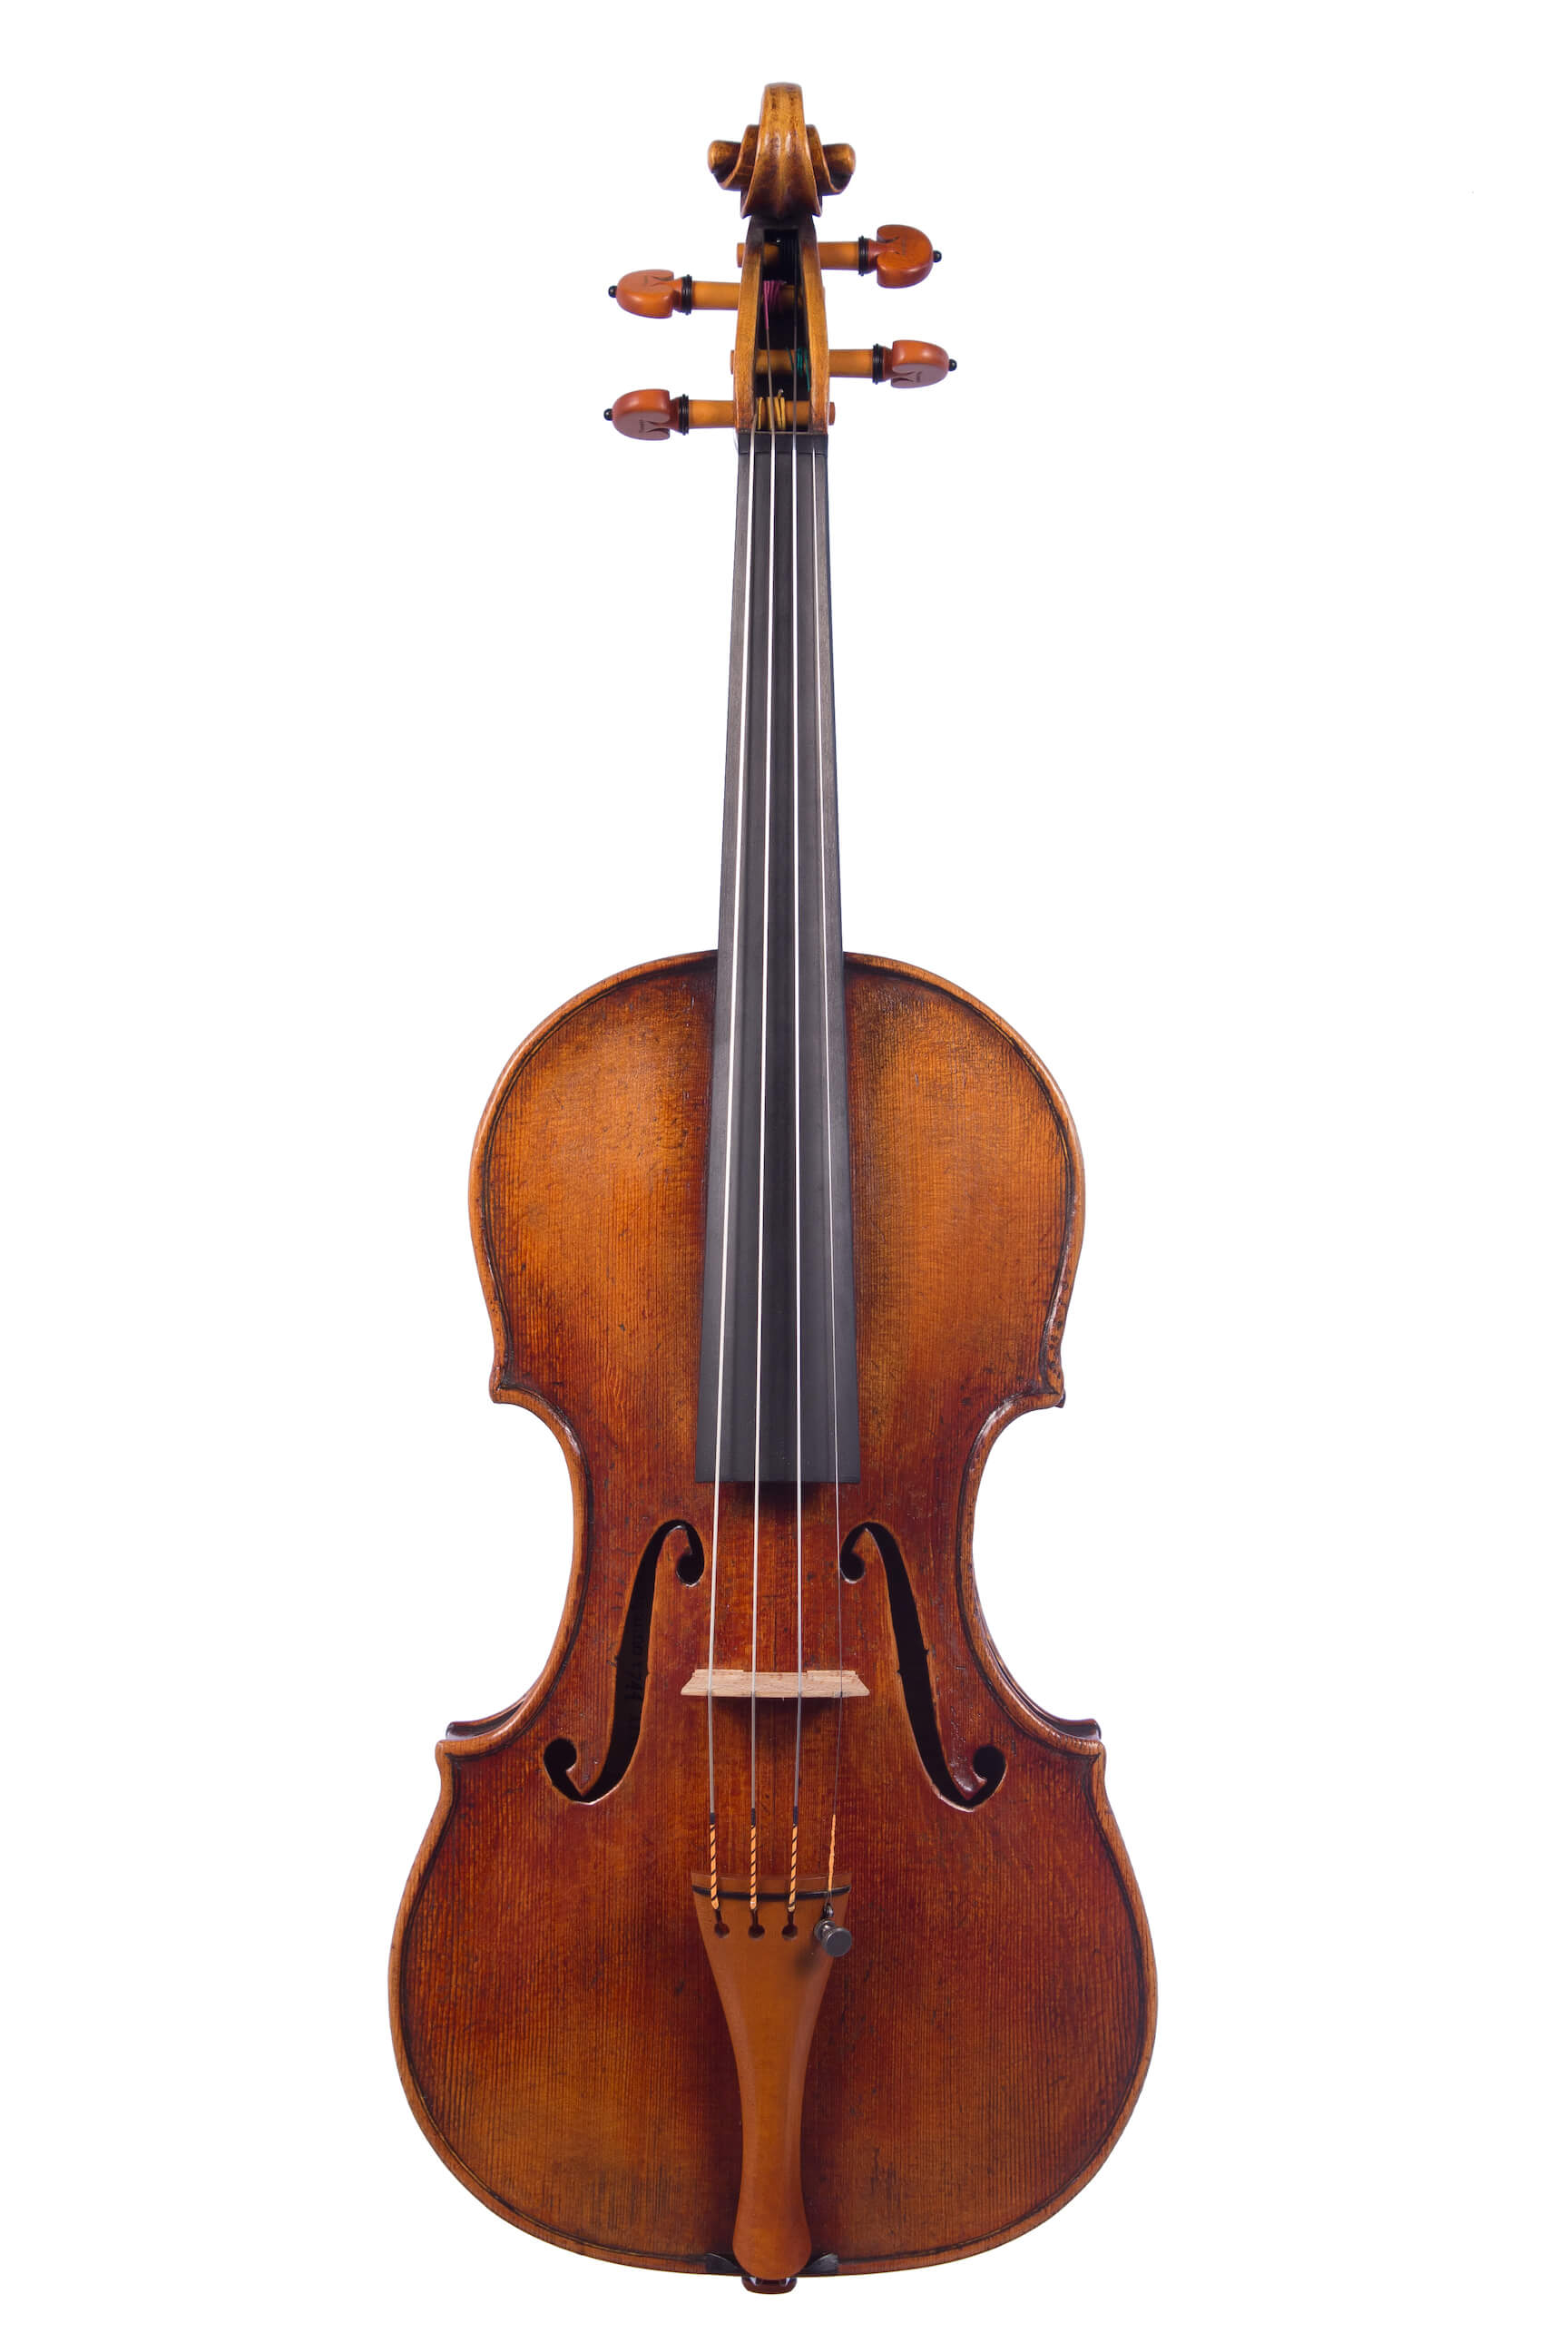 "Violin by Luiz Amorim, copy of Joseph Guarneri ""Del Gesù"" Sainton, 1744"